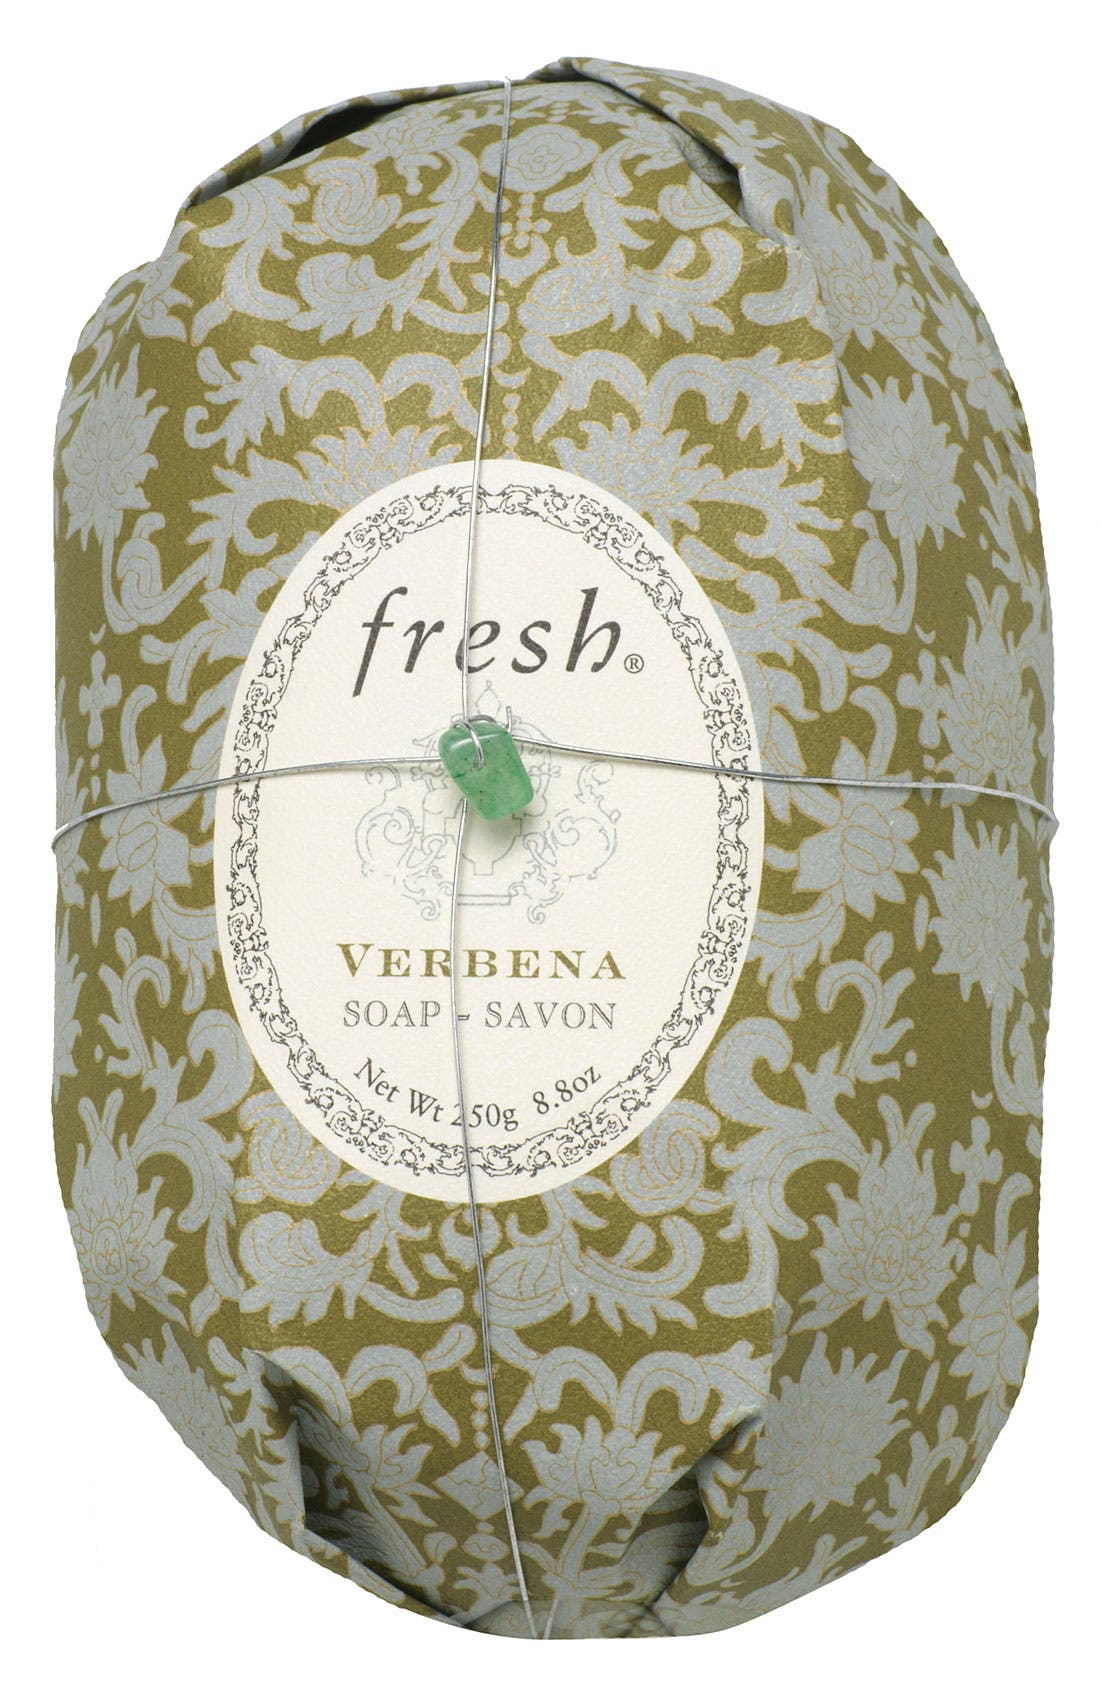 Fresh® 'Verbena' Oval Soap